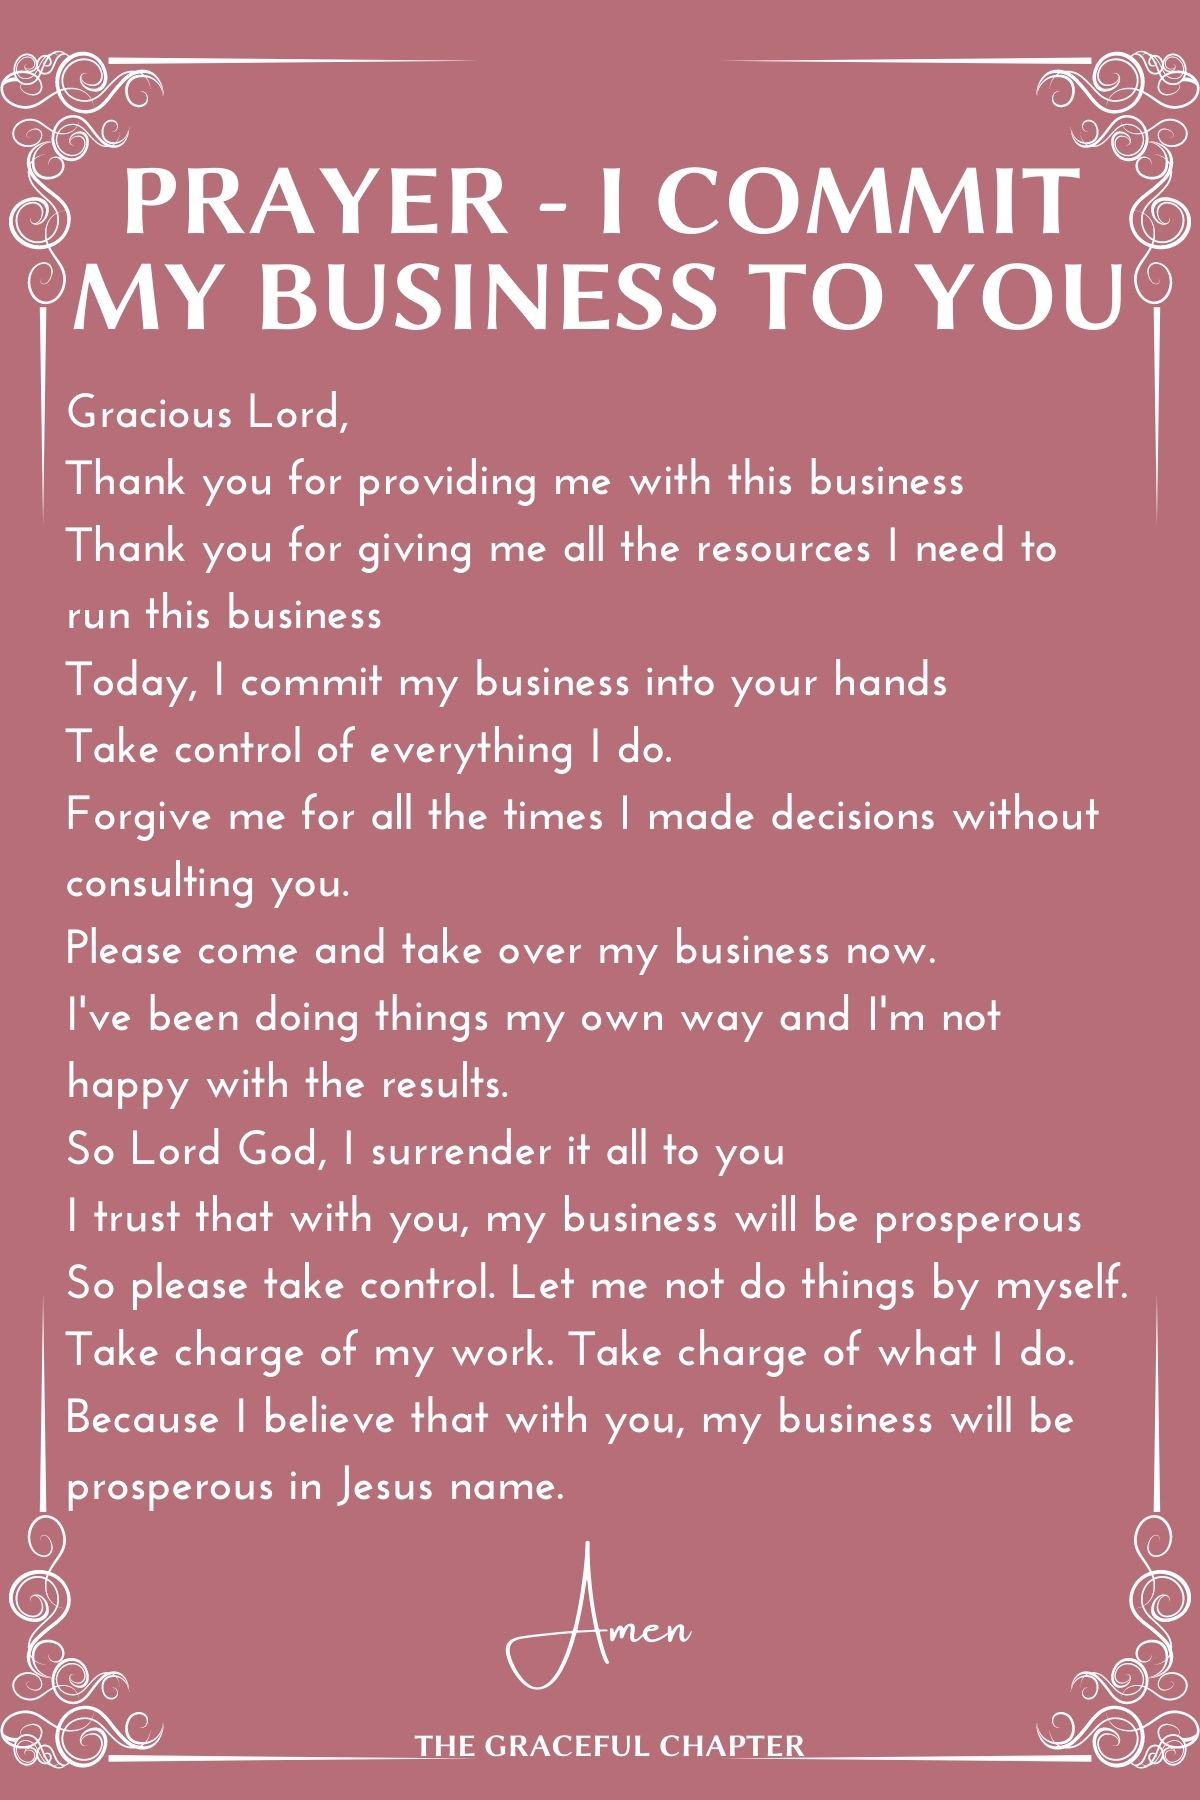 Prayer - I commit my business to you